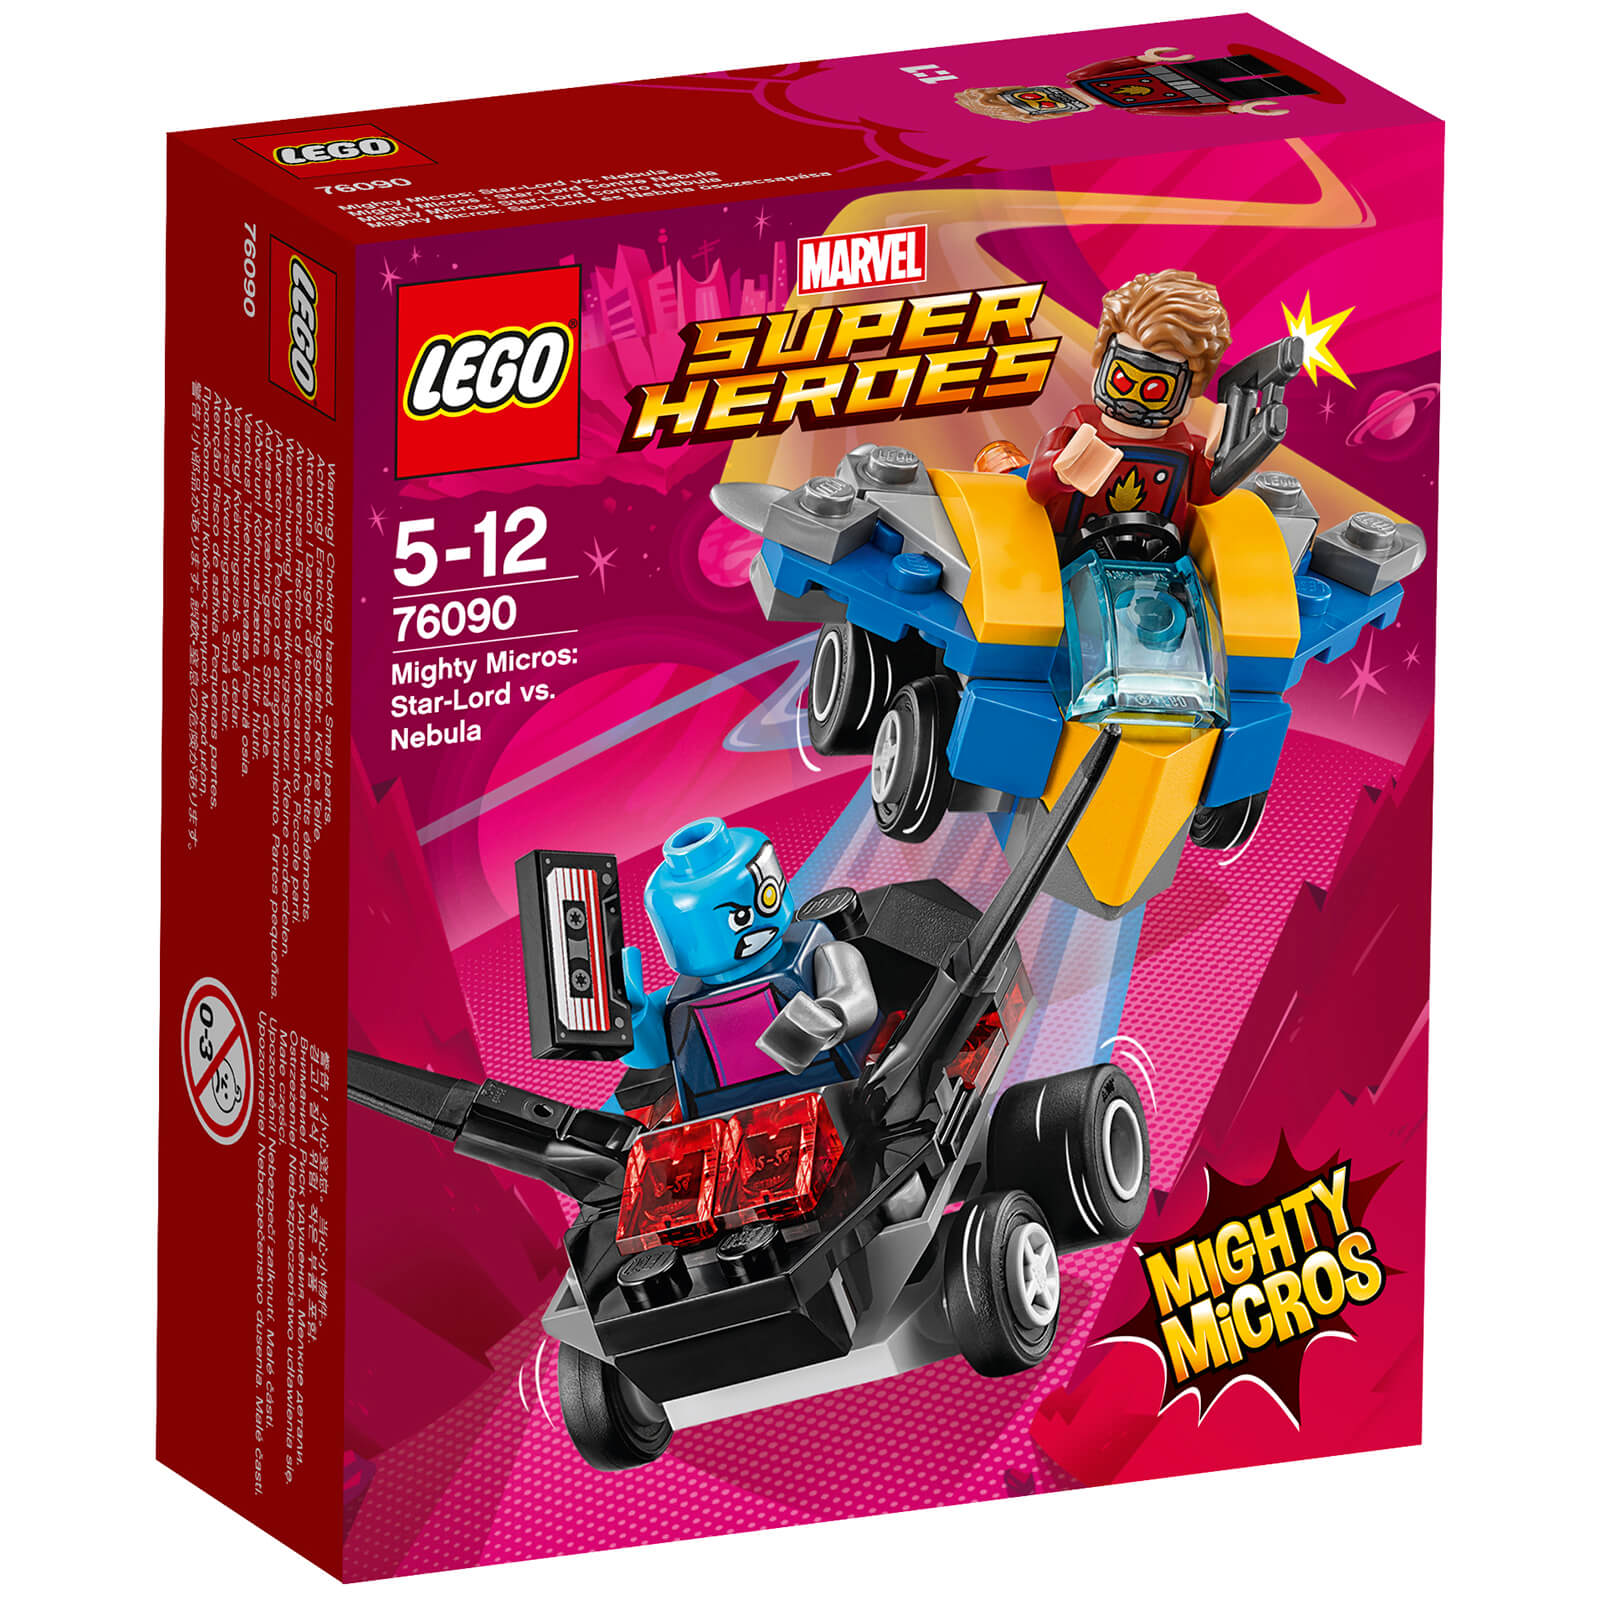 LEGO Superheroes Mighty Micros: Star-Lord Vs. Nebula (76090)